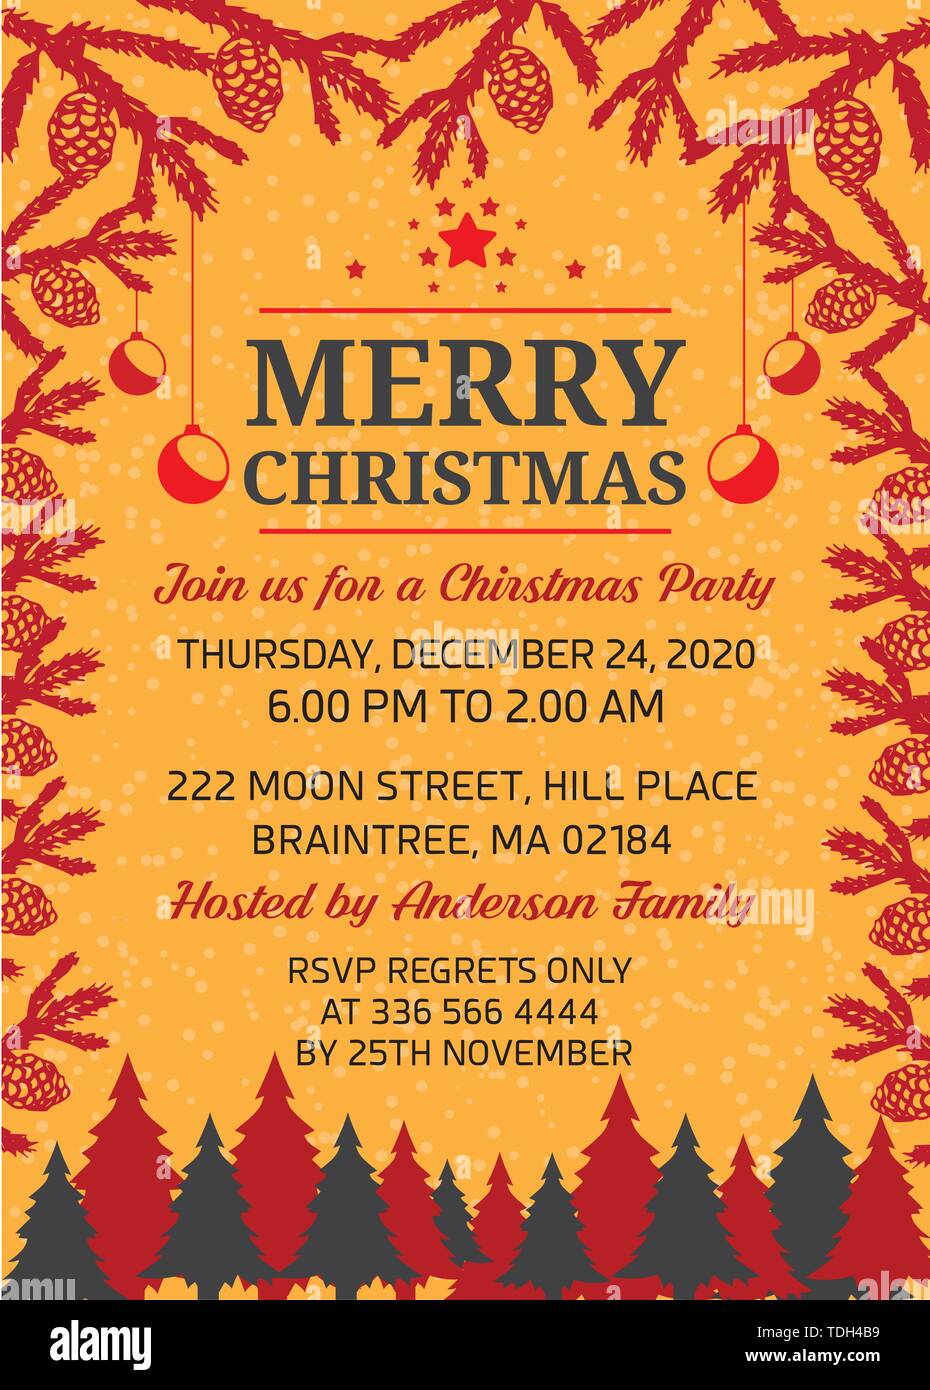 Merry Christmas Vector Invitation Design Template. Creative Typography for Holiday Greeting Gift Poster. Stock Vector